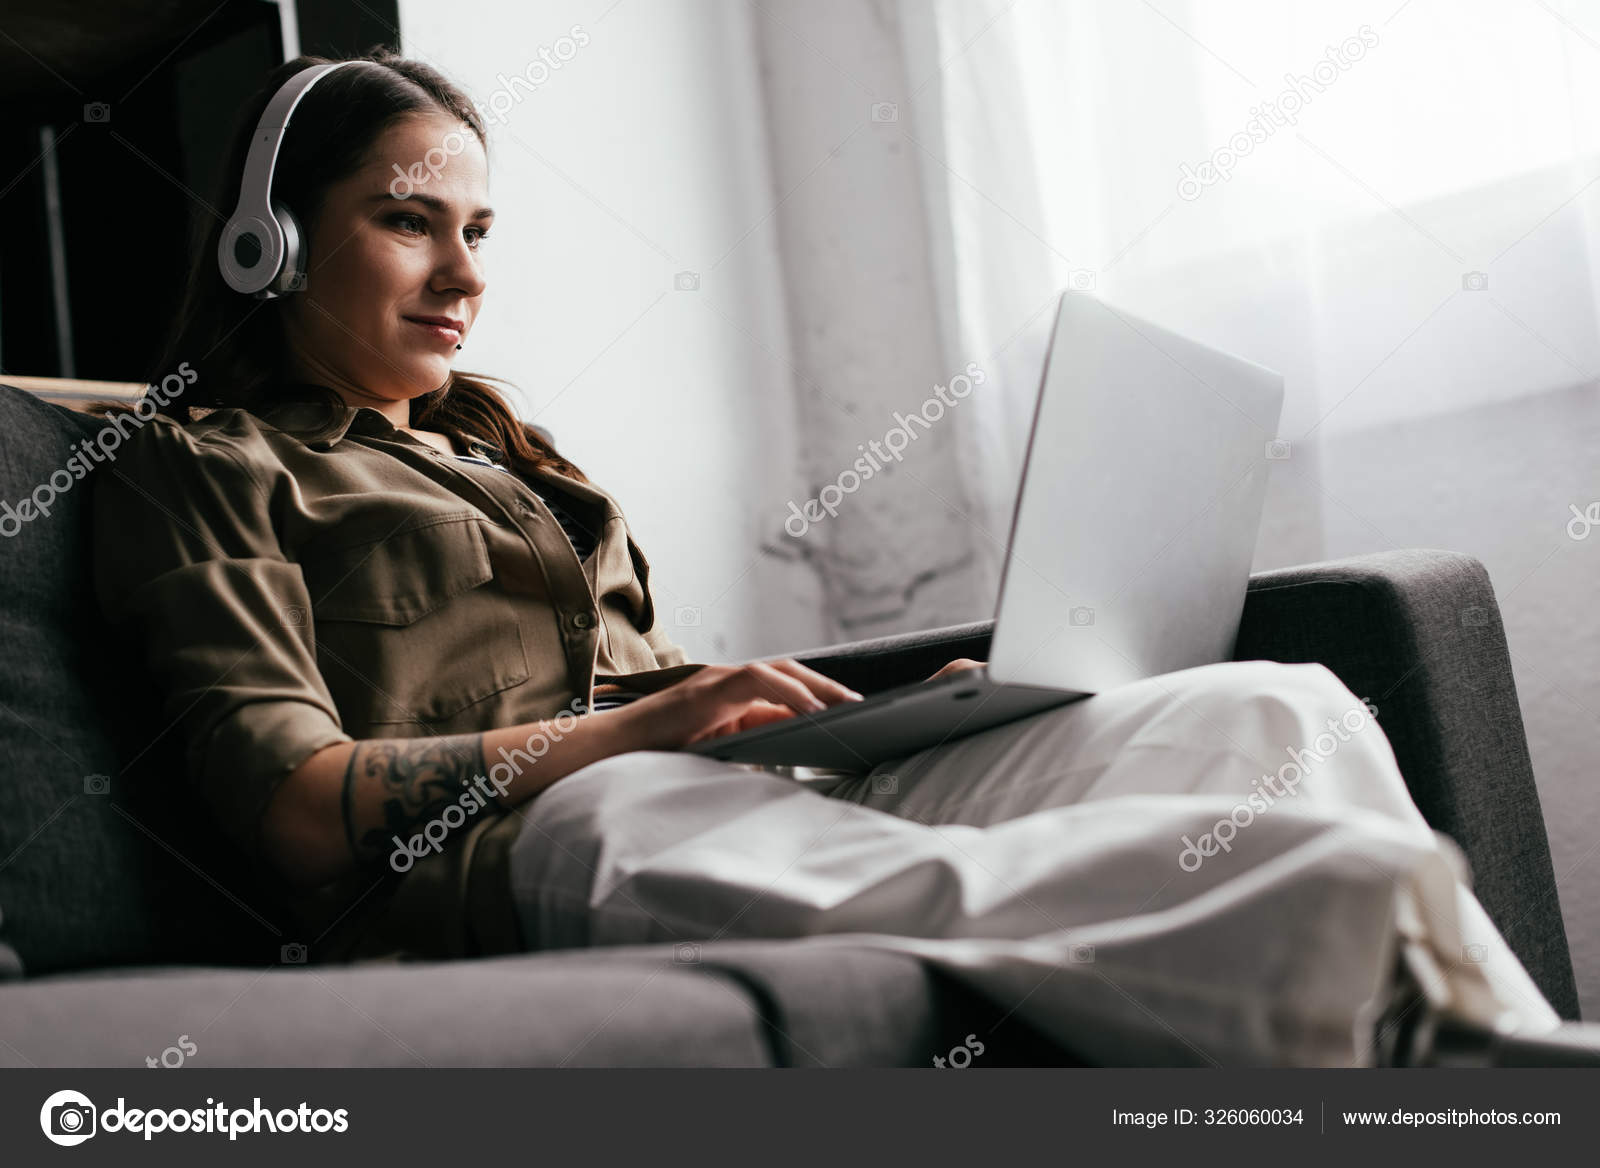 Ampwom ᐈ women amputee stock pictures, royalty free amputee woman